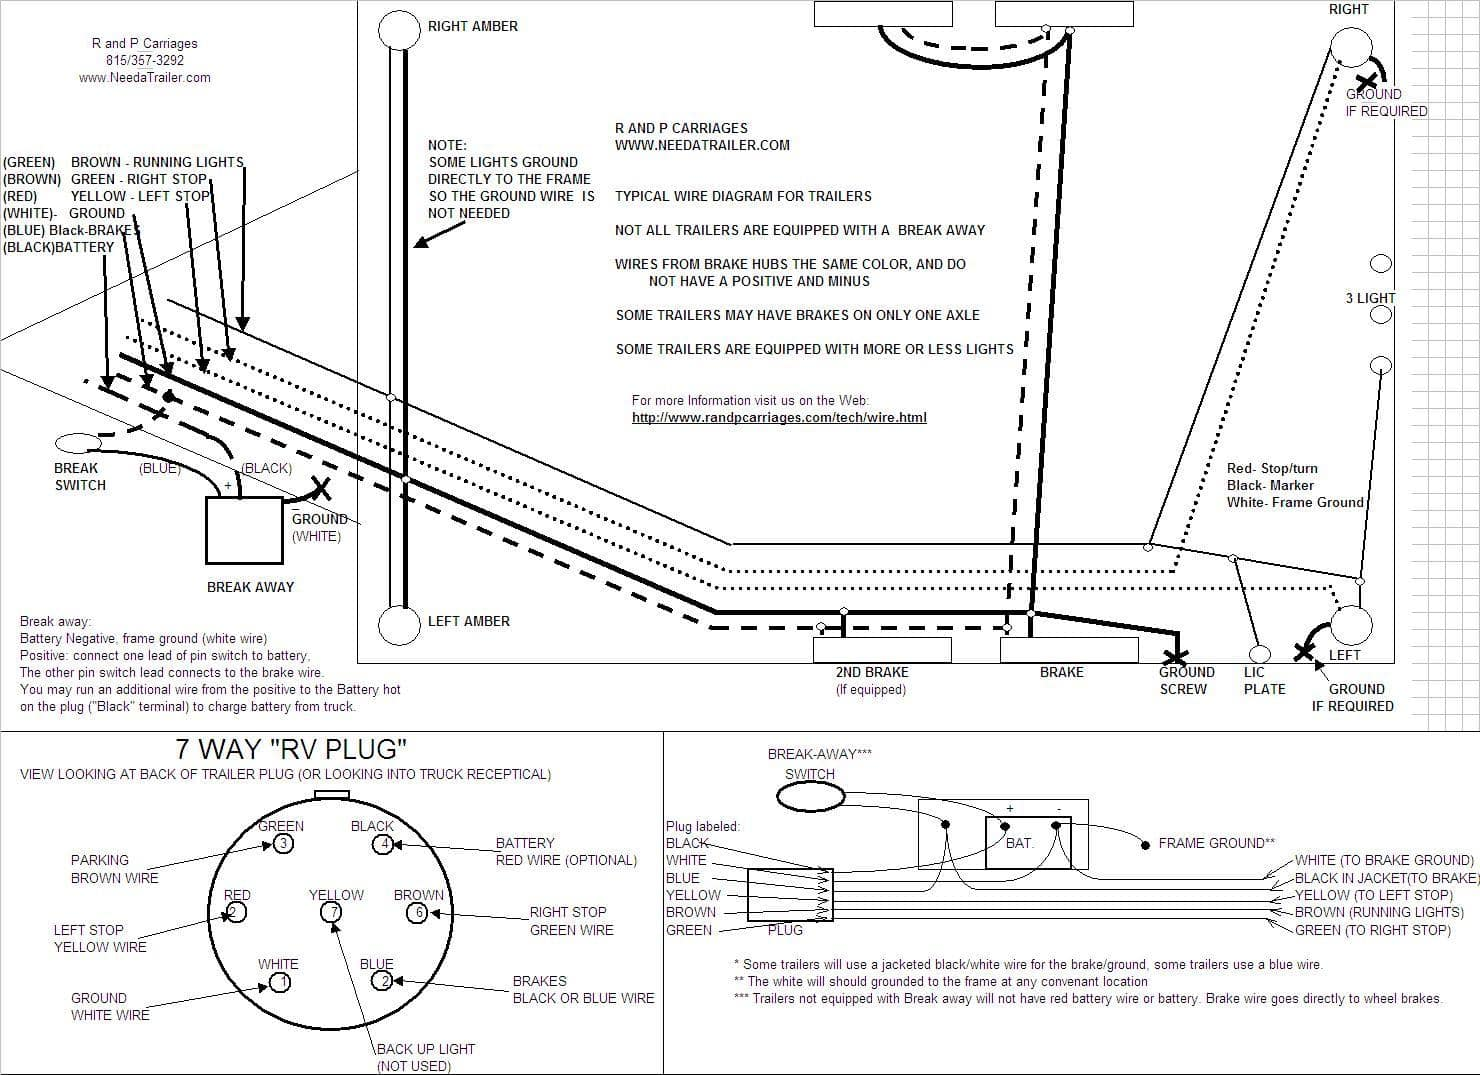 7 Way Plug Information | R and P Carriages | Cargo, Utility ...  Blade Wiring Diagram For Gooseneck Trailer on 4 blade trailer wiring diagram, 7 blade rv wiring, 7 blade trailer harness, 7 pin trailer connector diagram, 7 blade trailer wire, 7 blade trailer plug, 7 blade lighting diagram, 6 blade trailer wiring diagram, 7 blade wiring harness, 5 blade trailer wiring diagram,